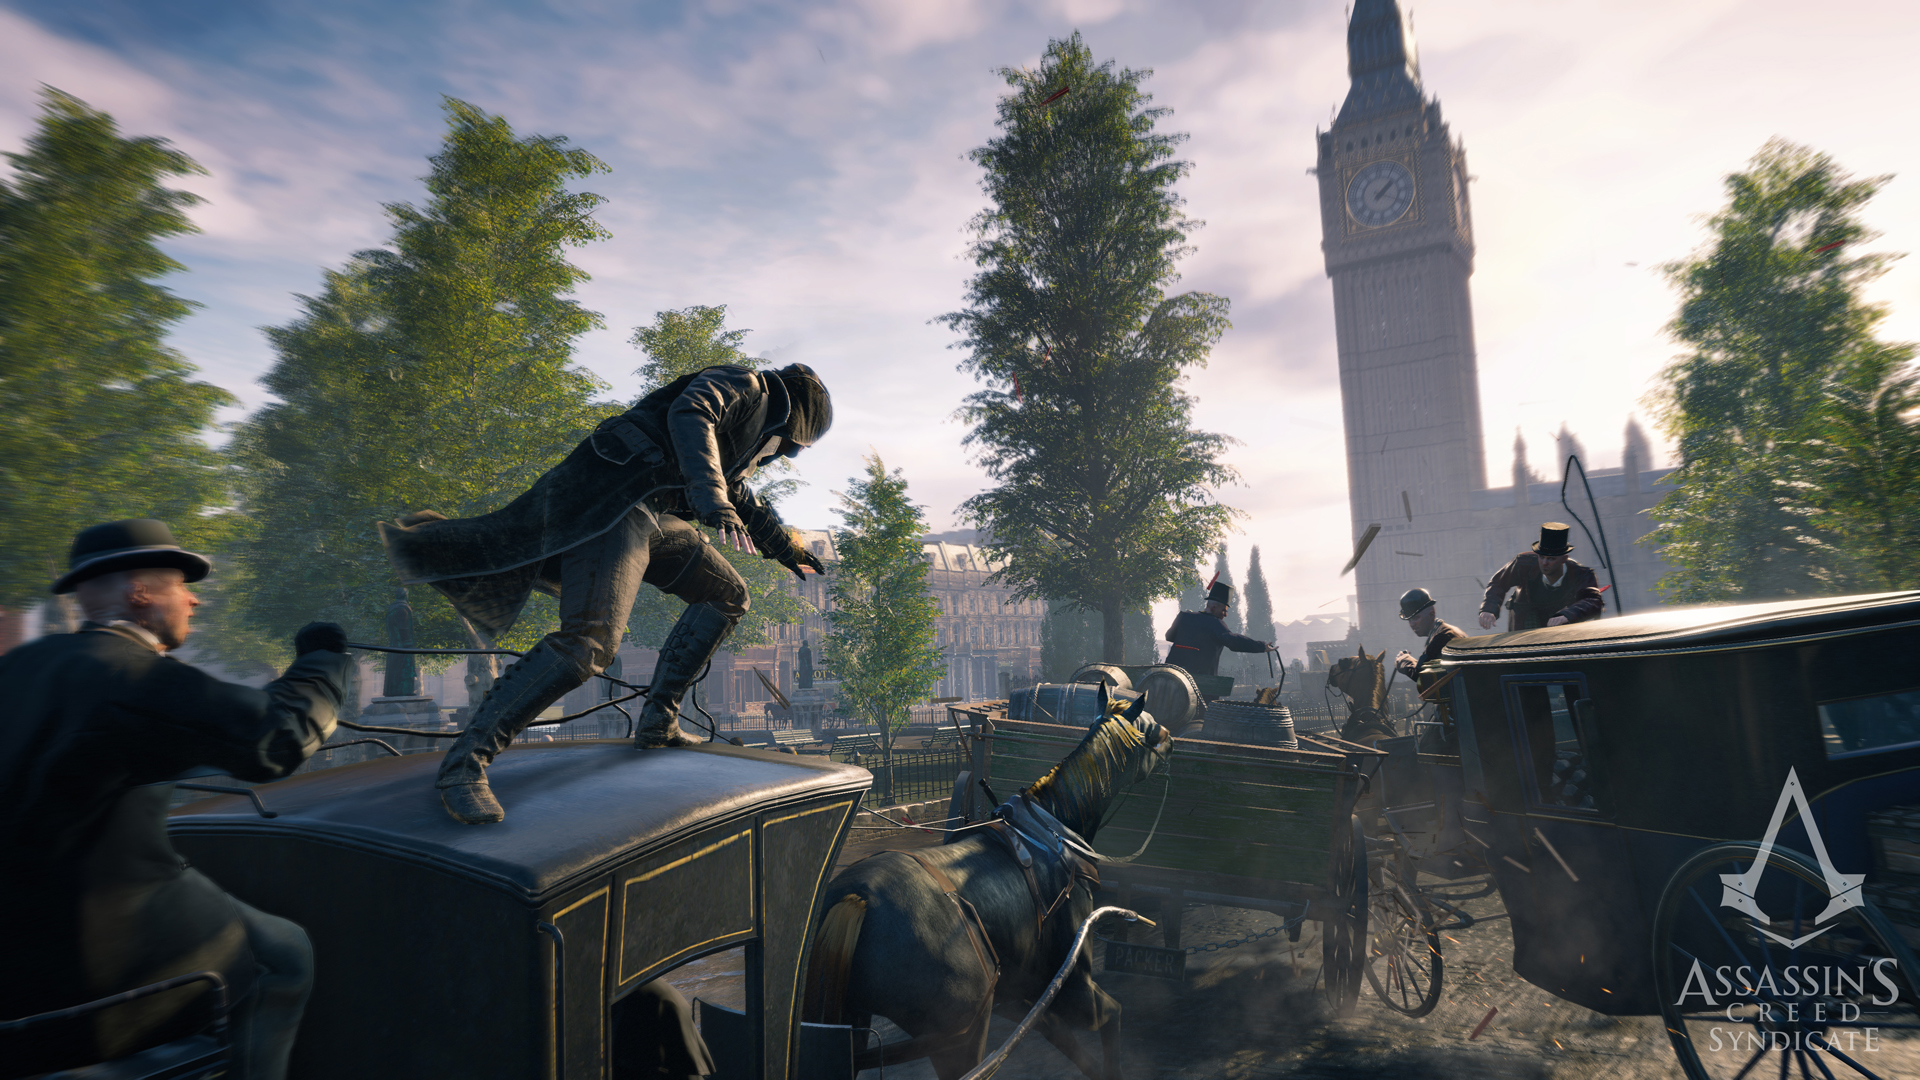 Assassins Creed Syndicate Selective DLC files image 2